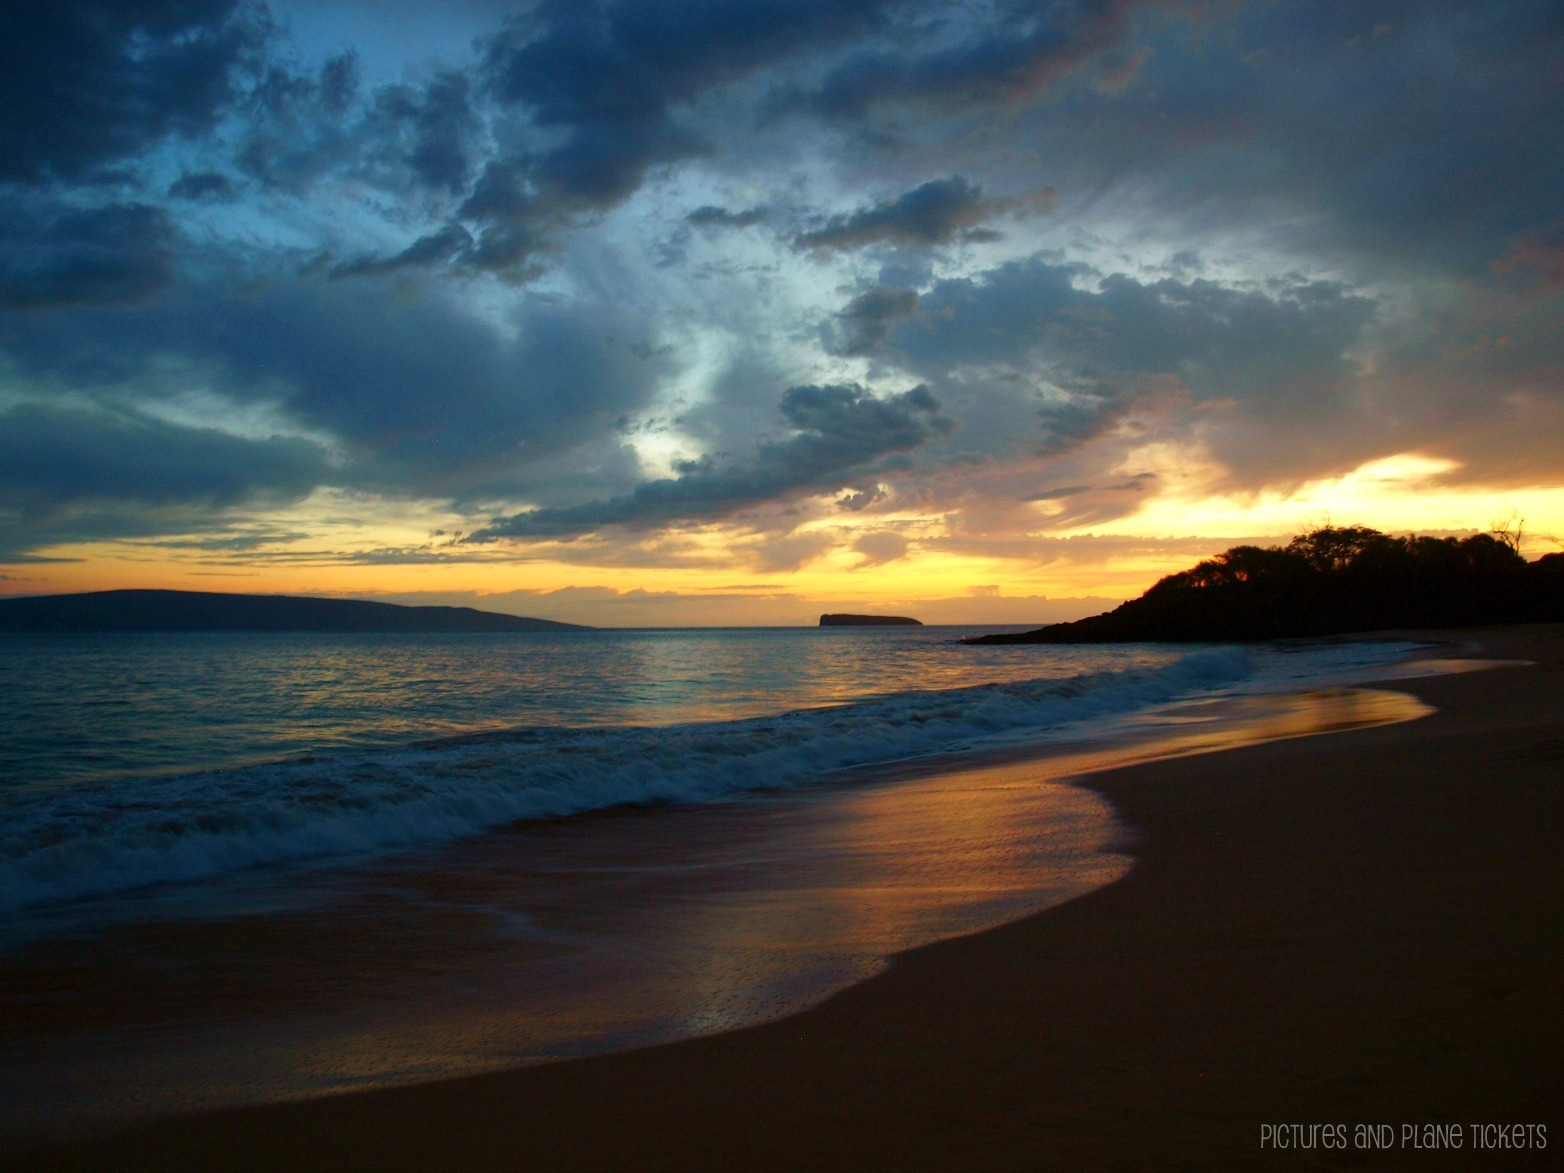 Pictures & Plane Tickets-Maui Big Beach Sunset